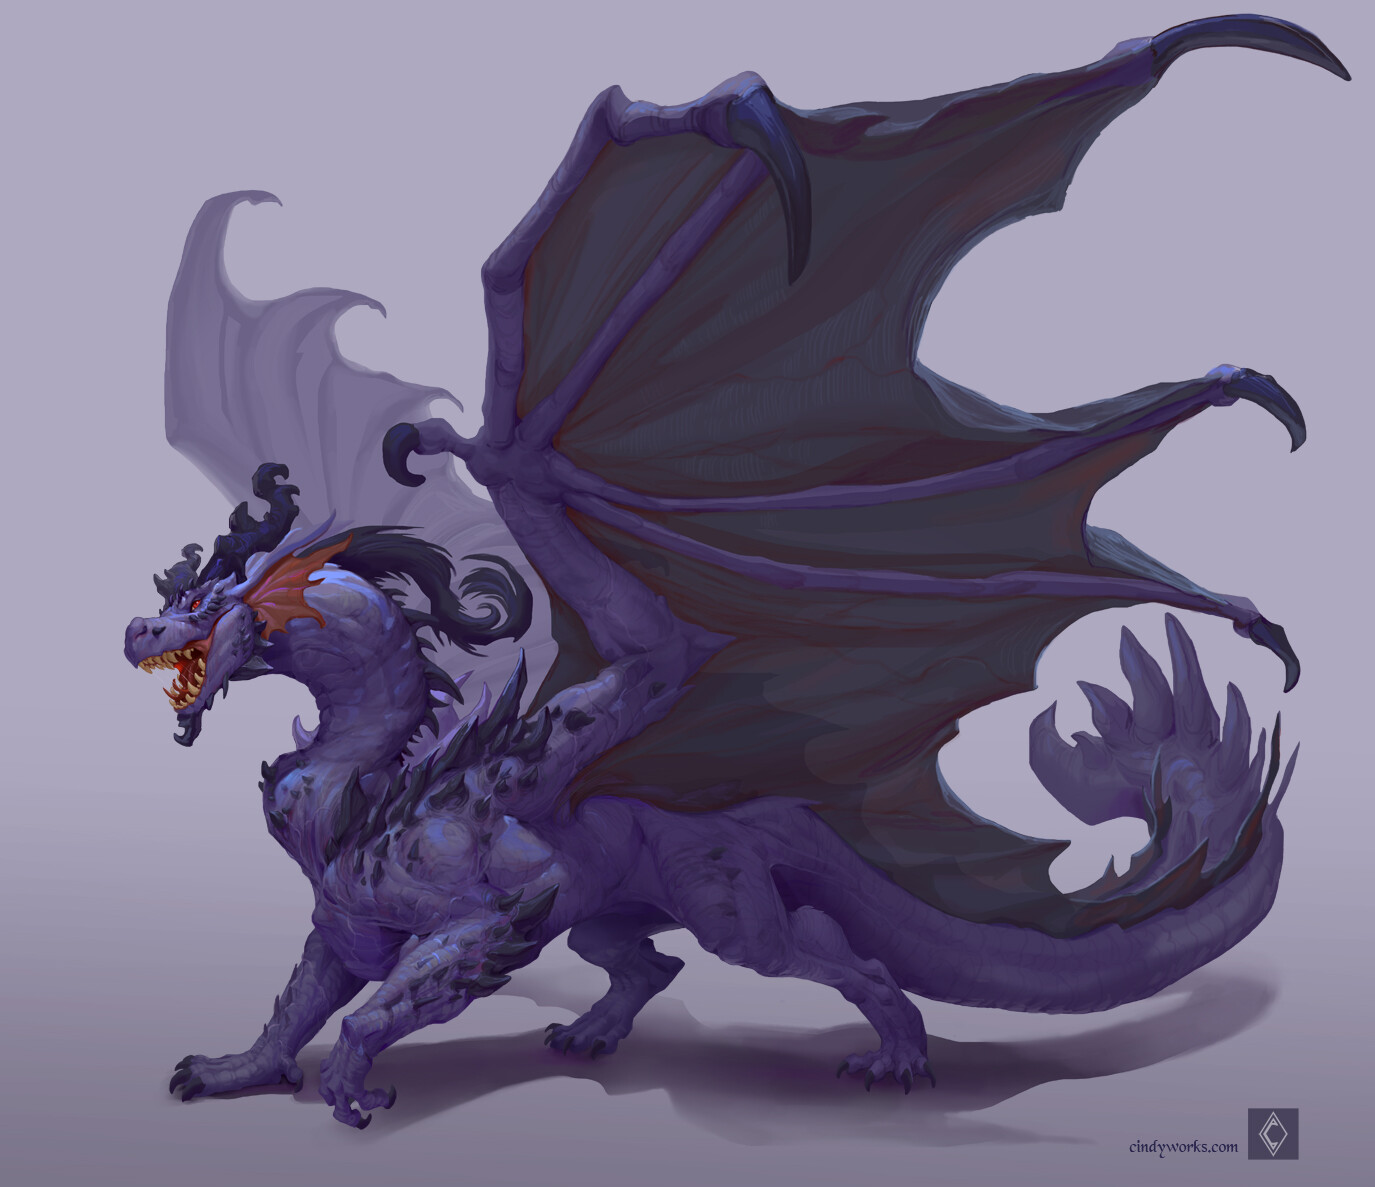 Sorcerer's dragon form